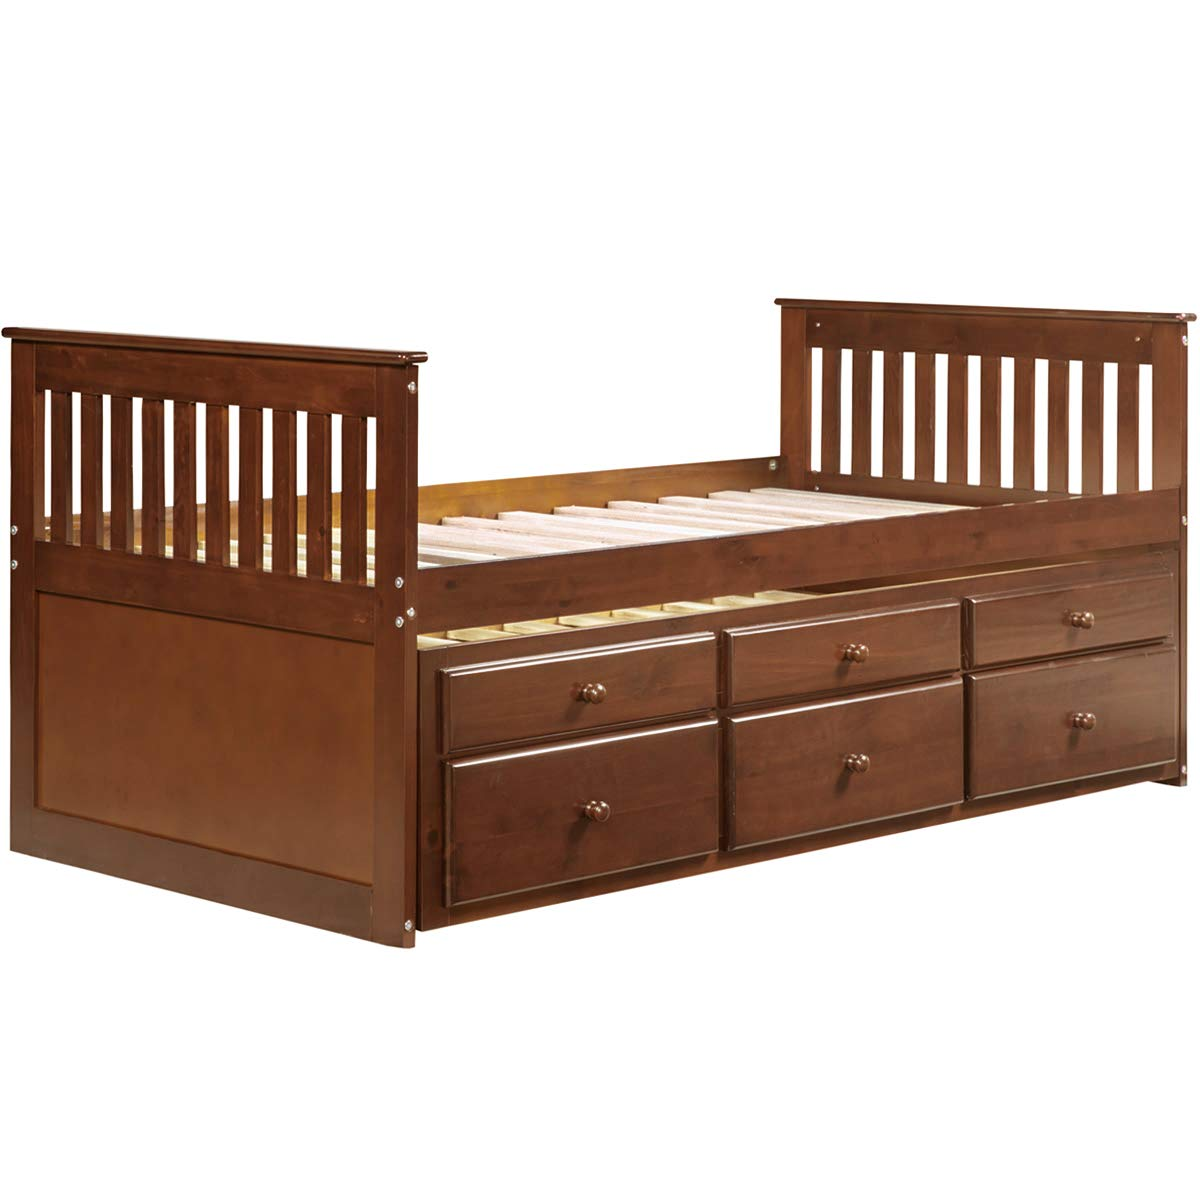 Amazoncom Captains Platform Storage Bed With Trundle Bed And